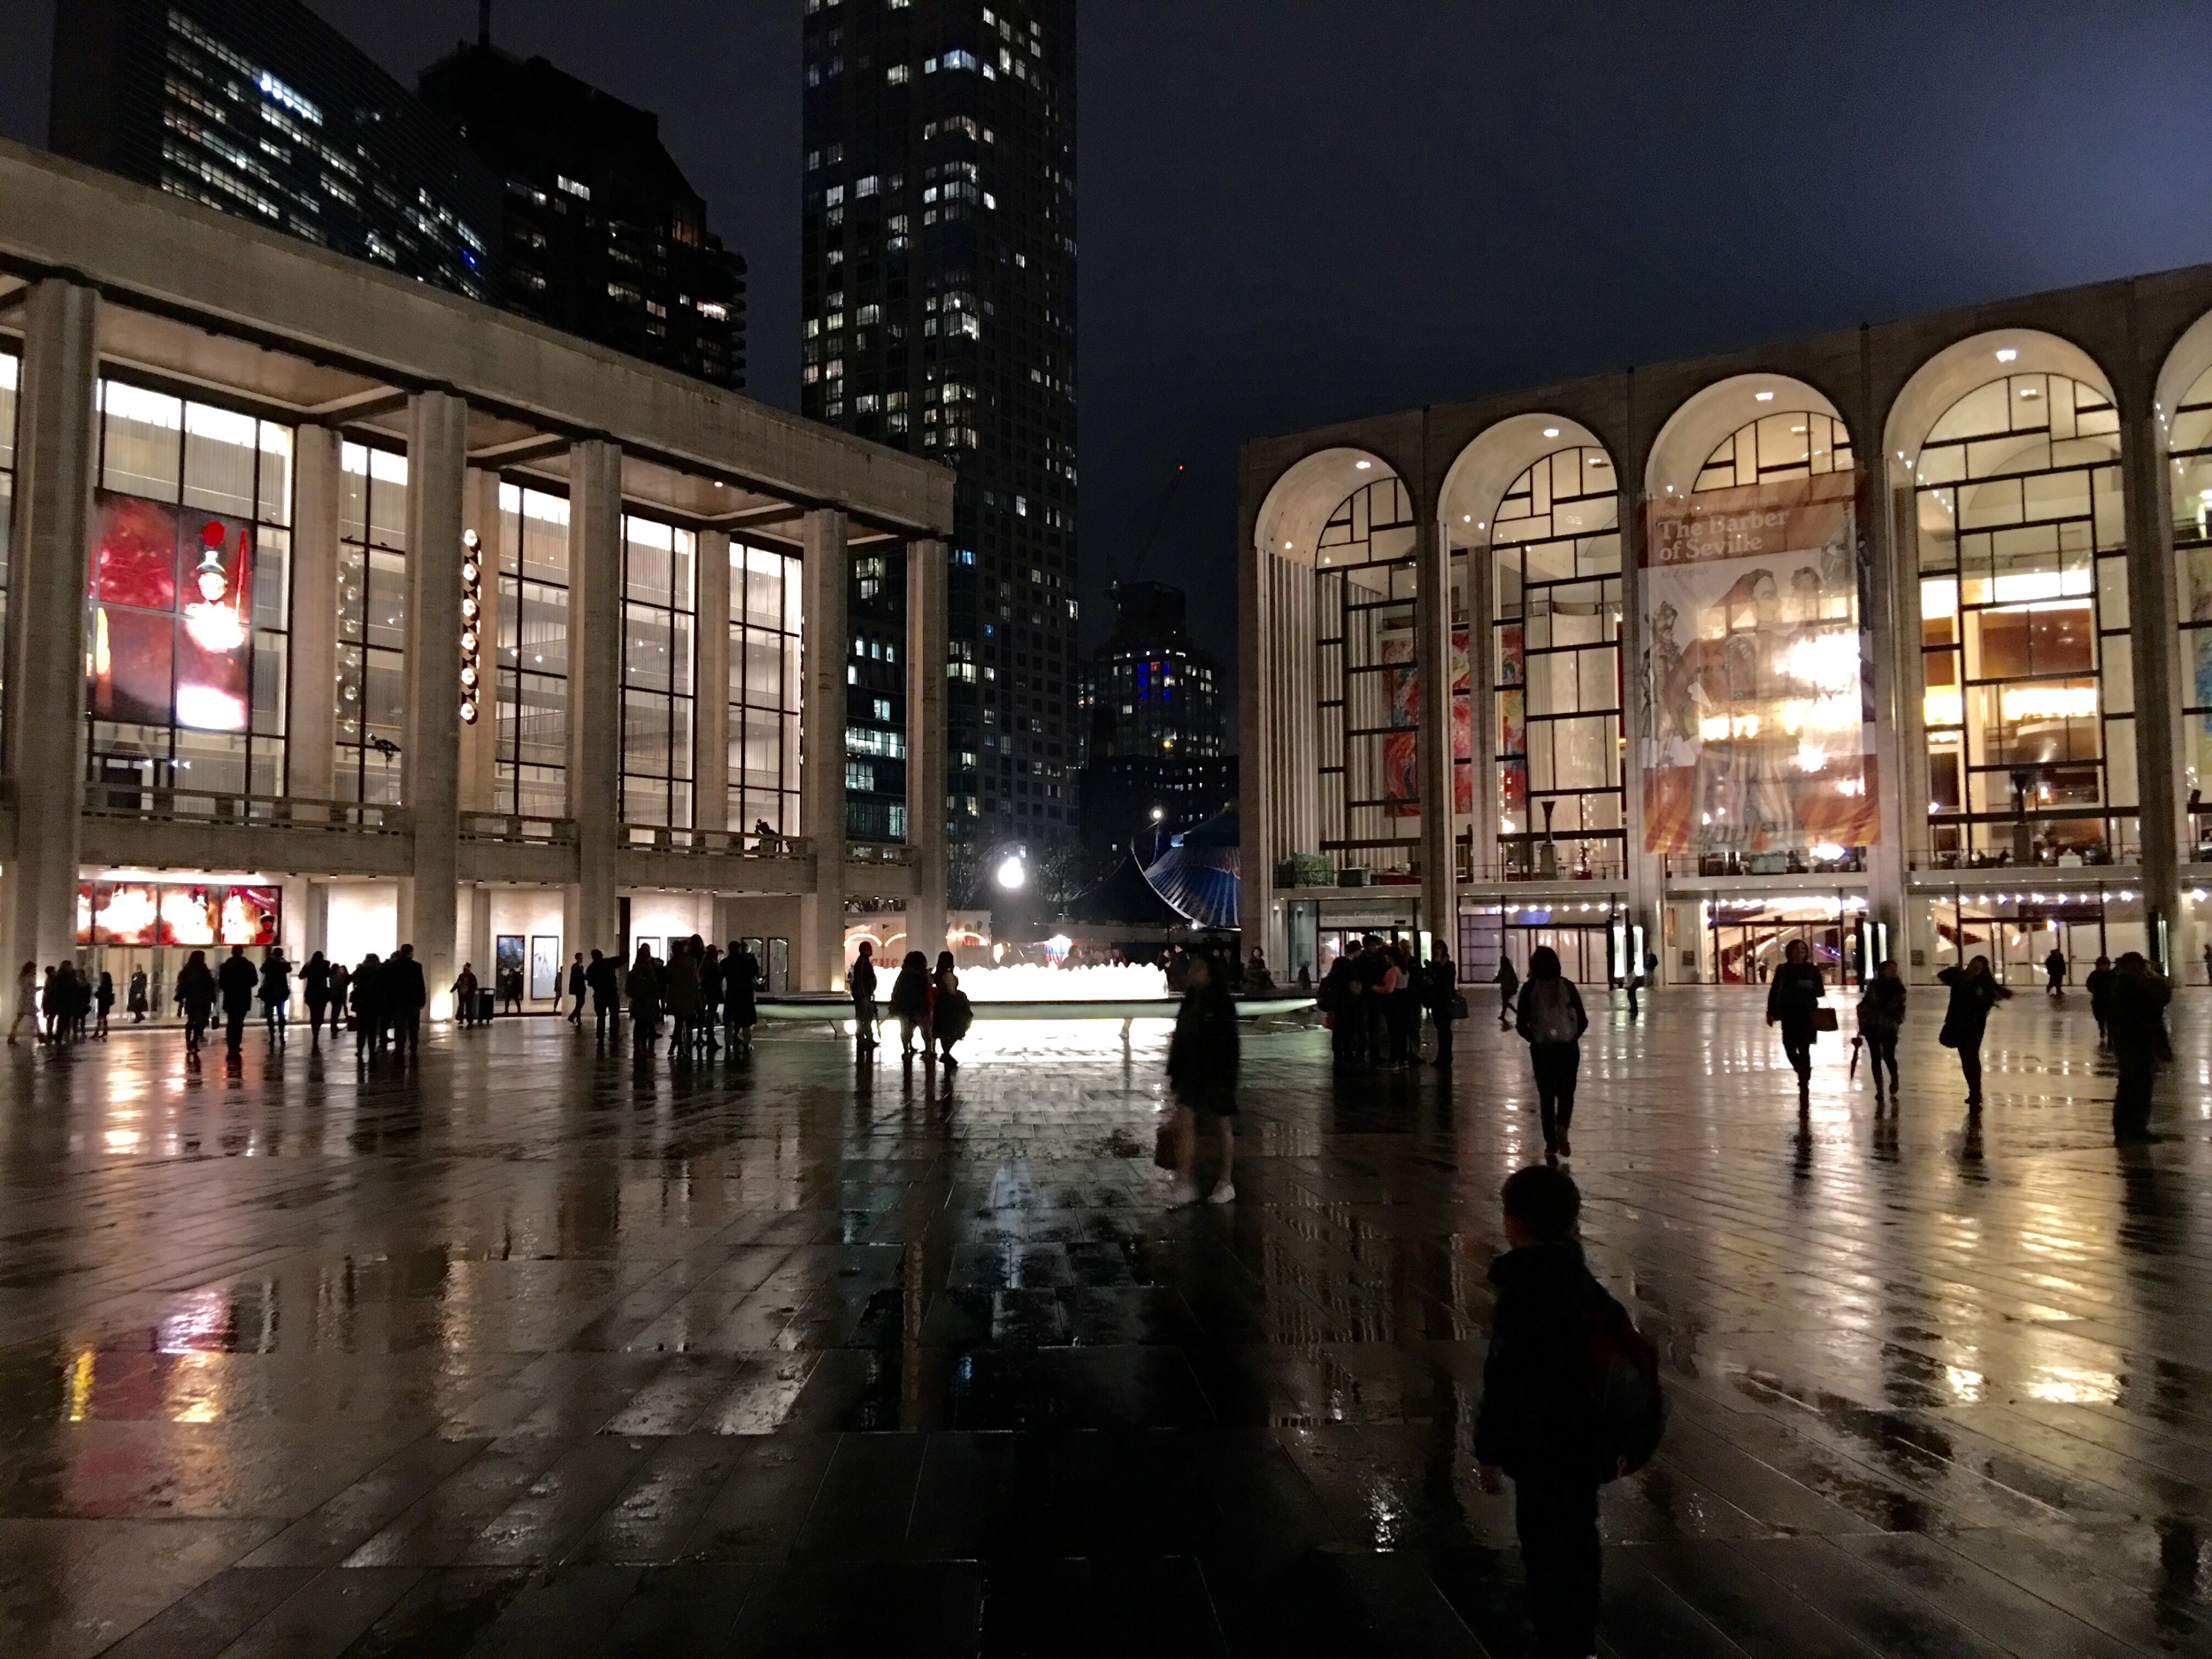 Lincoln Center, I'm coming back!